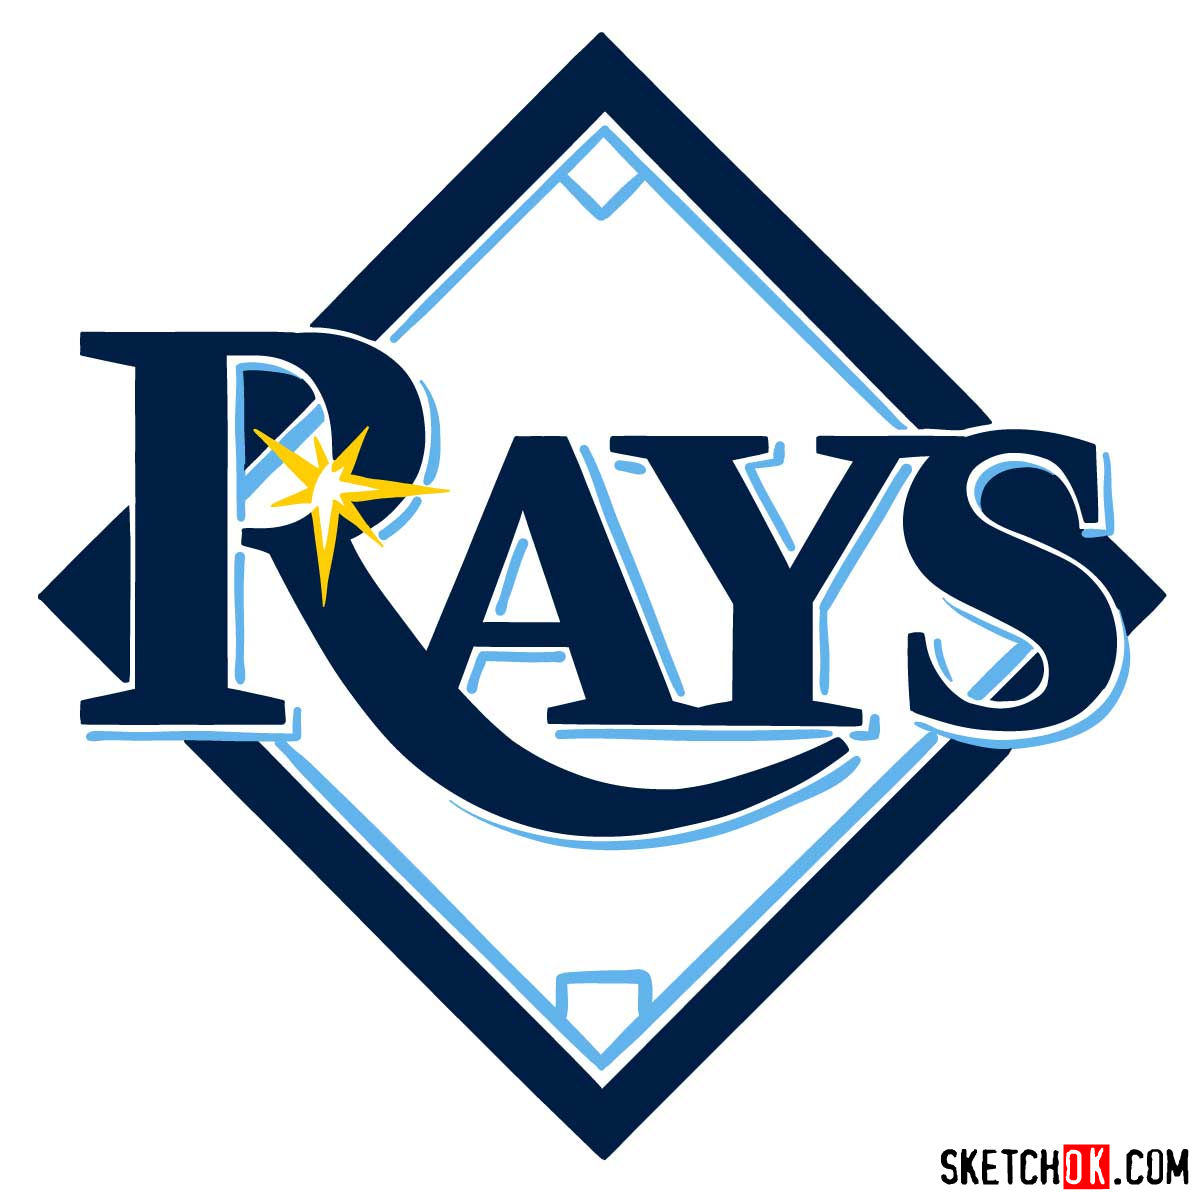 How to draw Tampa Bay Rays logo | MLB logos